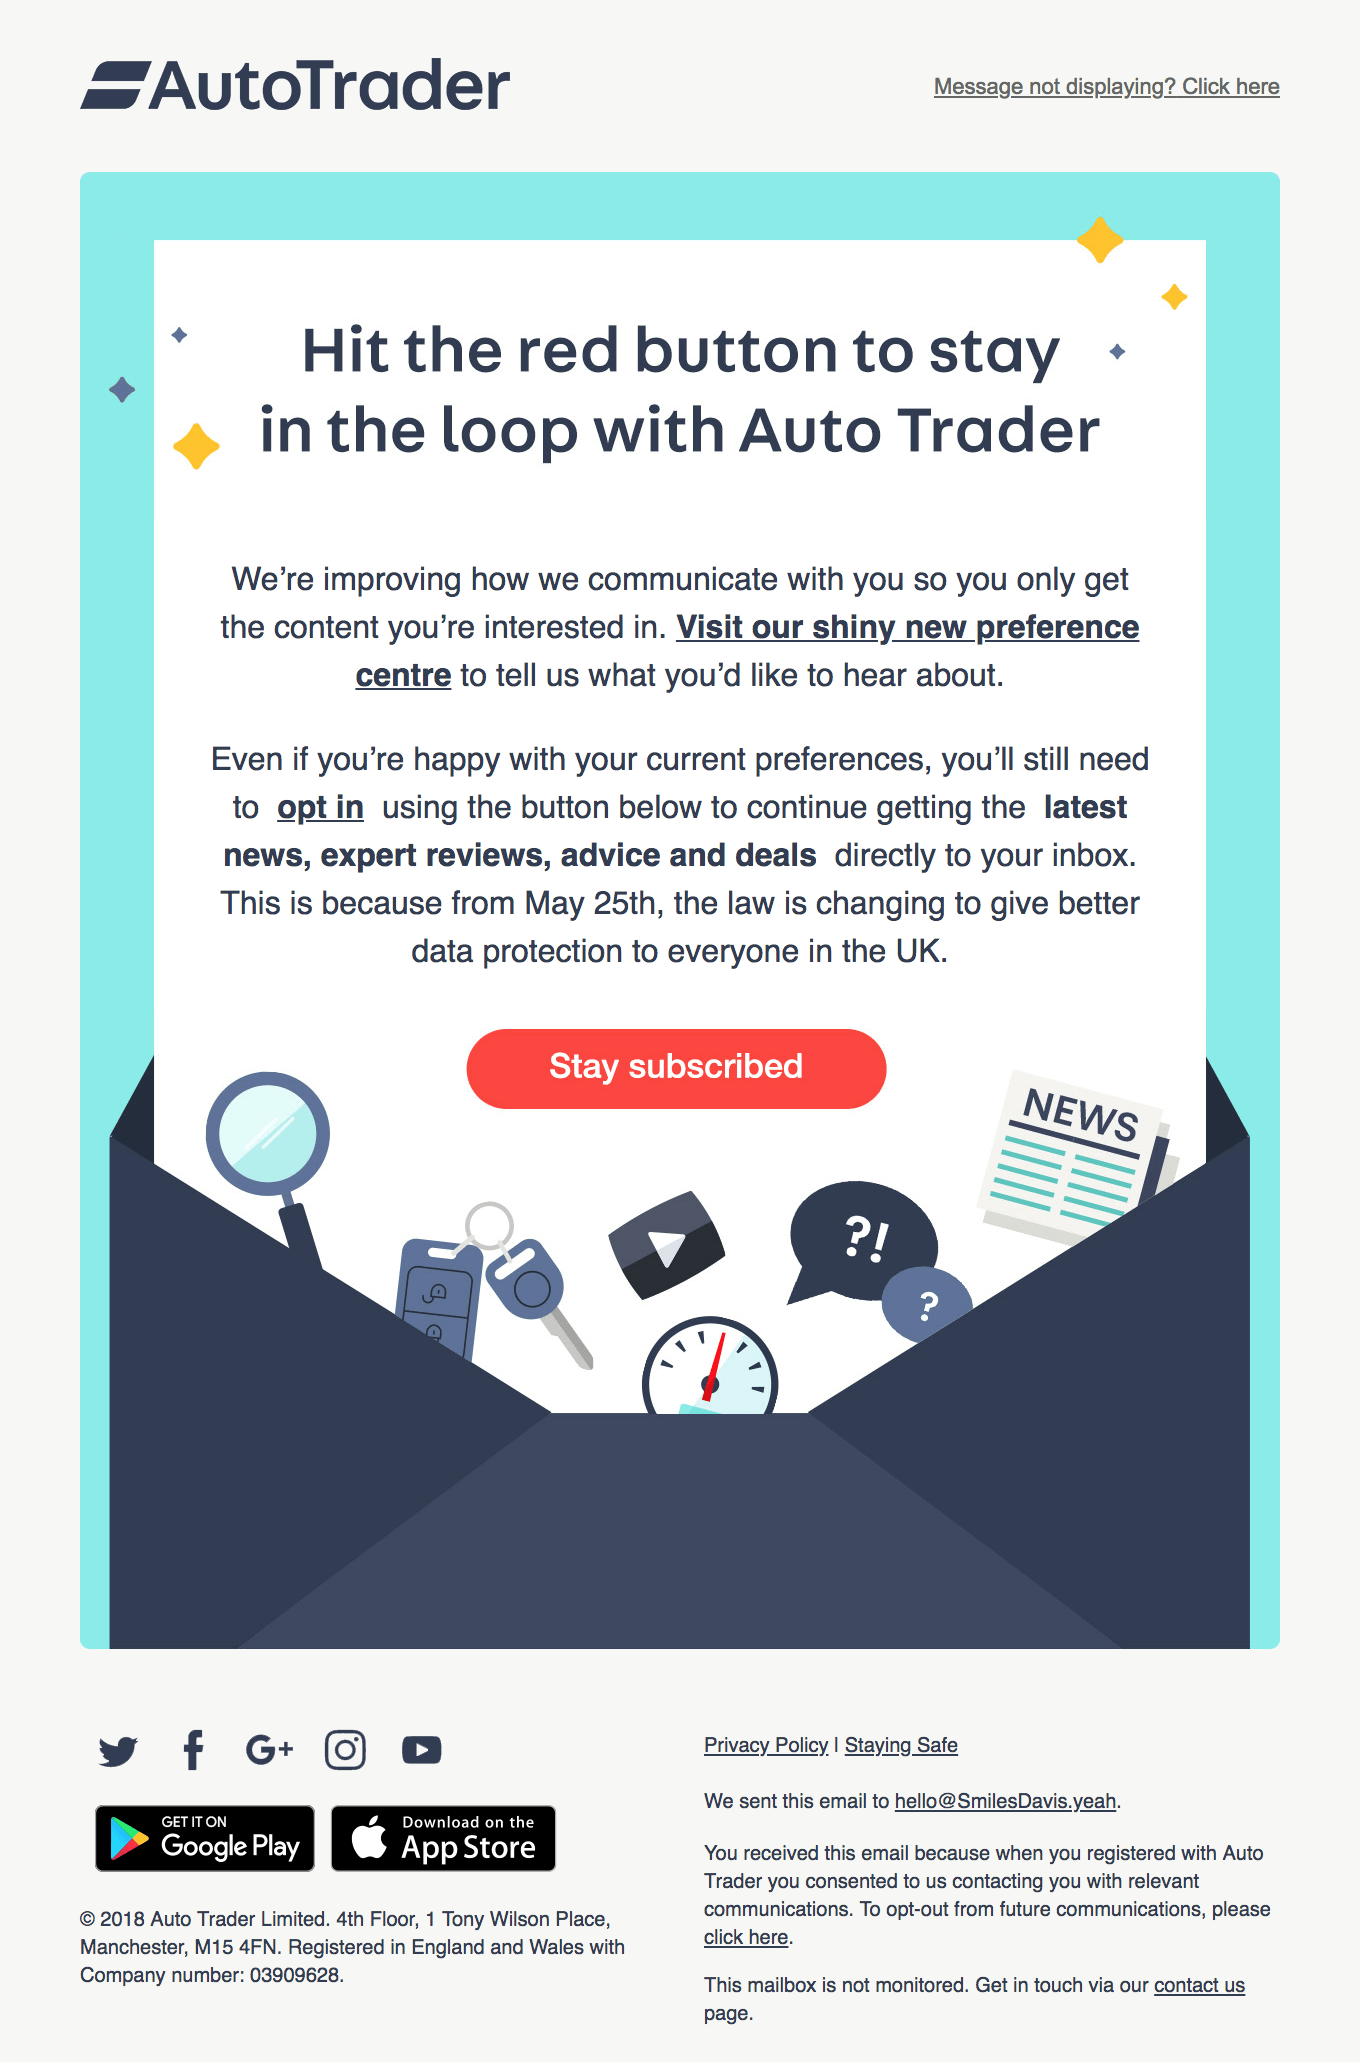 AutoTrader opt-in email example